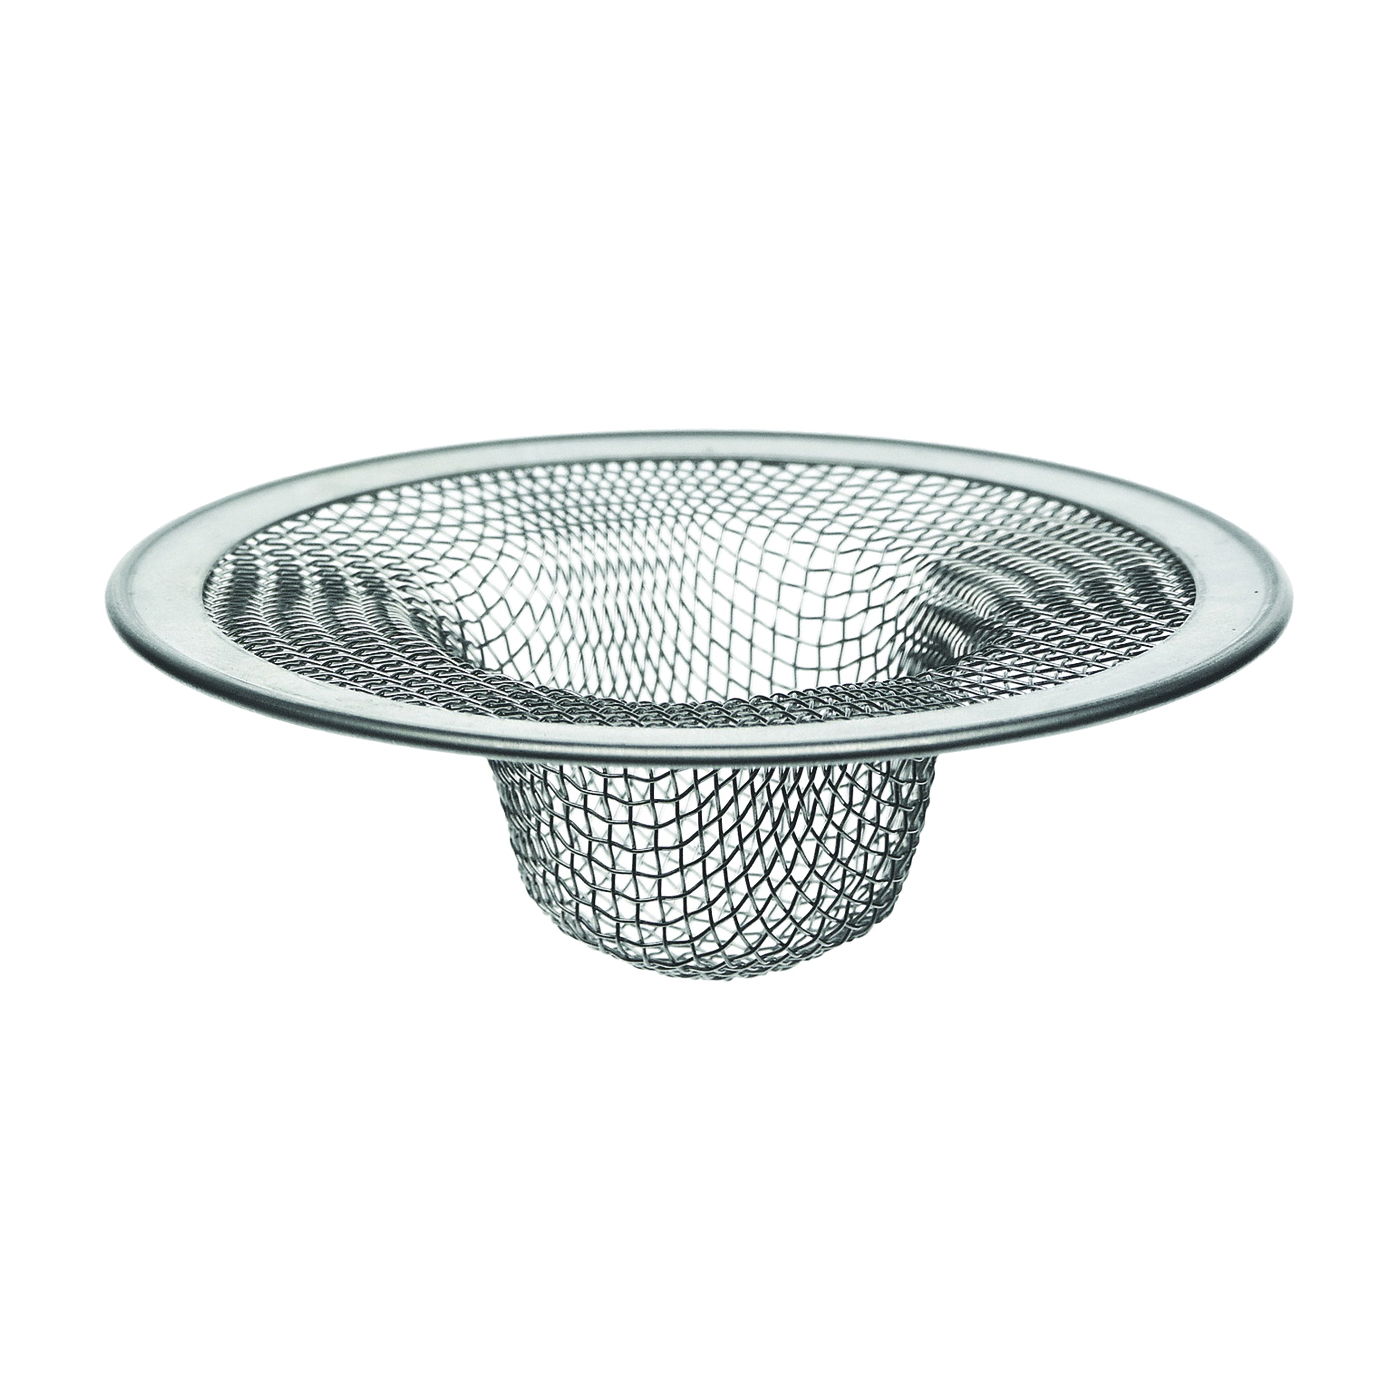 Picture of Danco 88821 Mesh Strainer, Stainless Steel